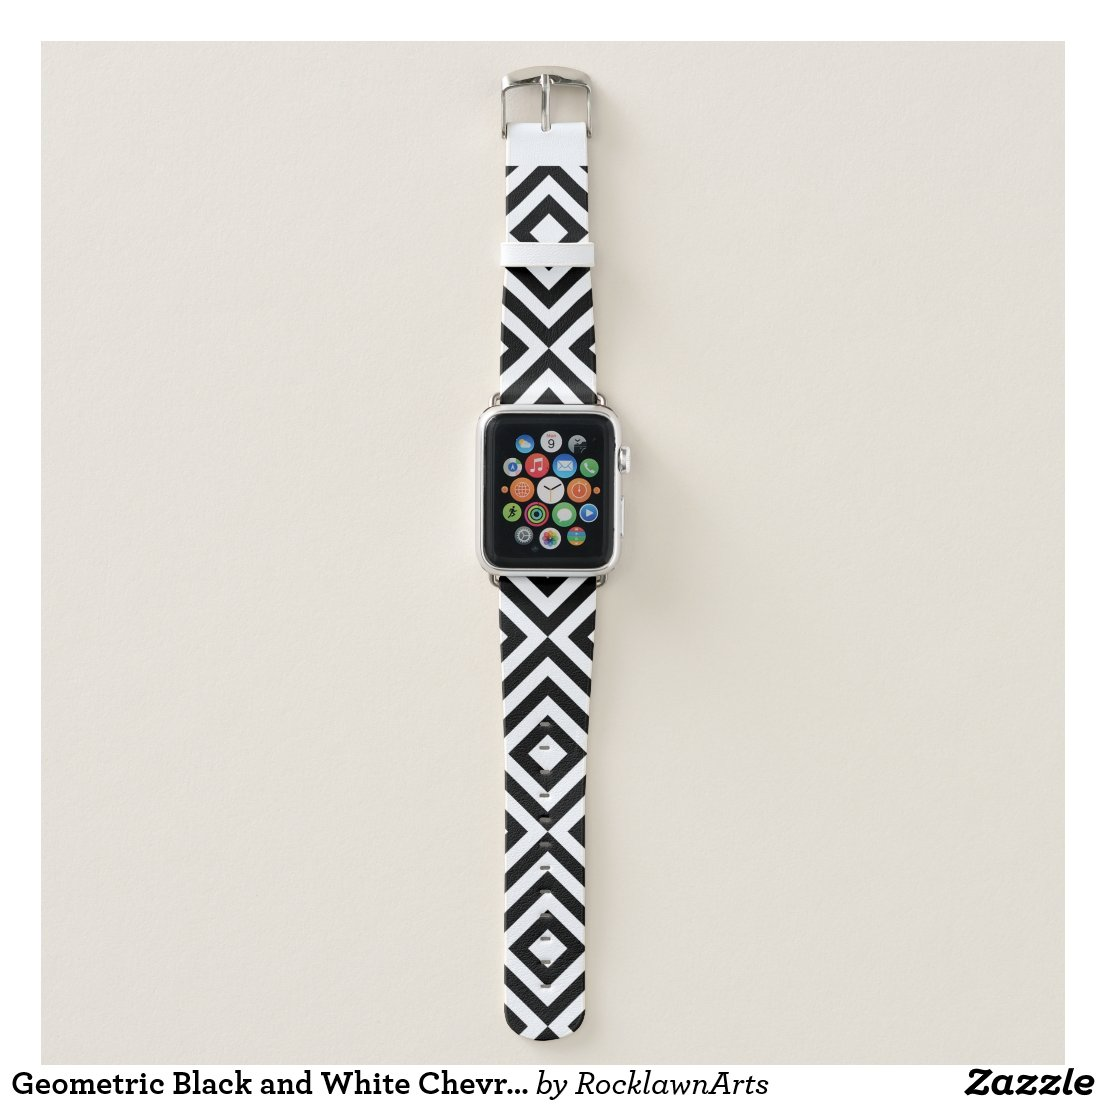 Geometric Black and White Chevrons, Diamonds Apple Watch Band